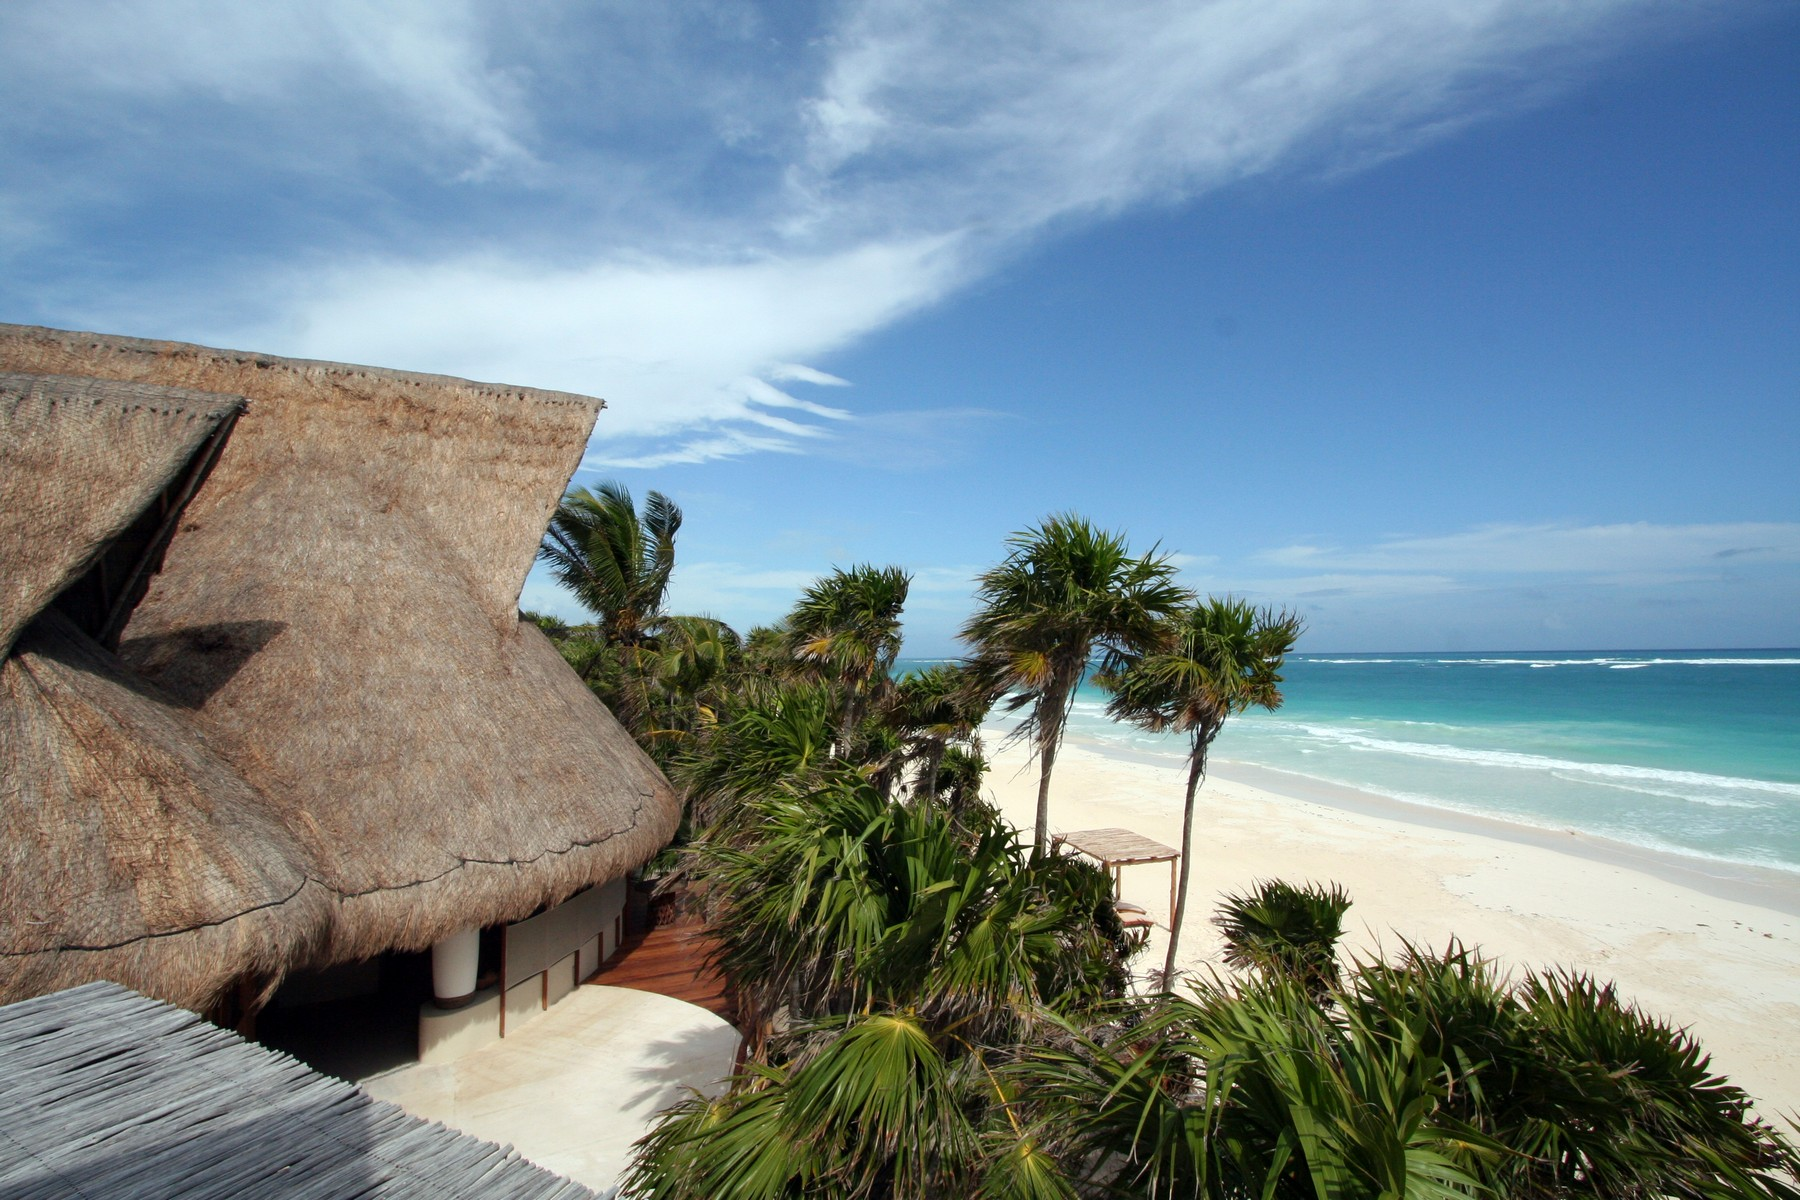 Single Family Home for Sale at CASA SIANKAANA Camino Tulum-Boca Paila Lote Fracc. 1 Tulum, 77780 Mexico